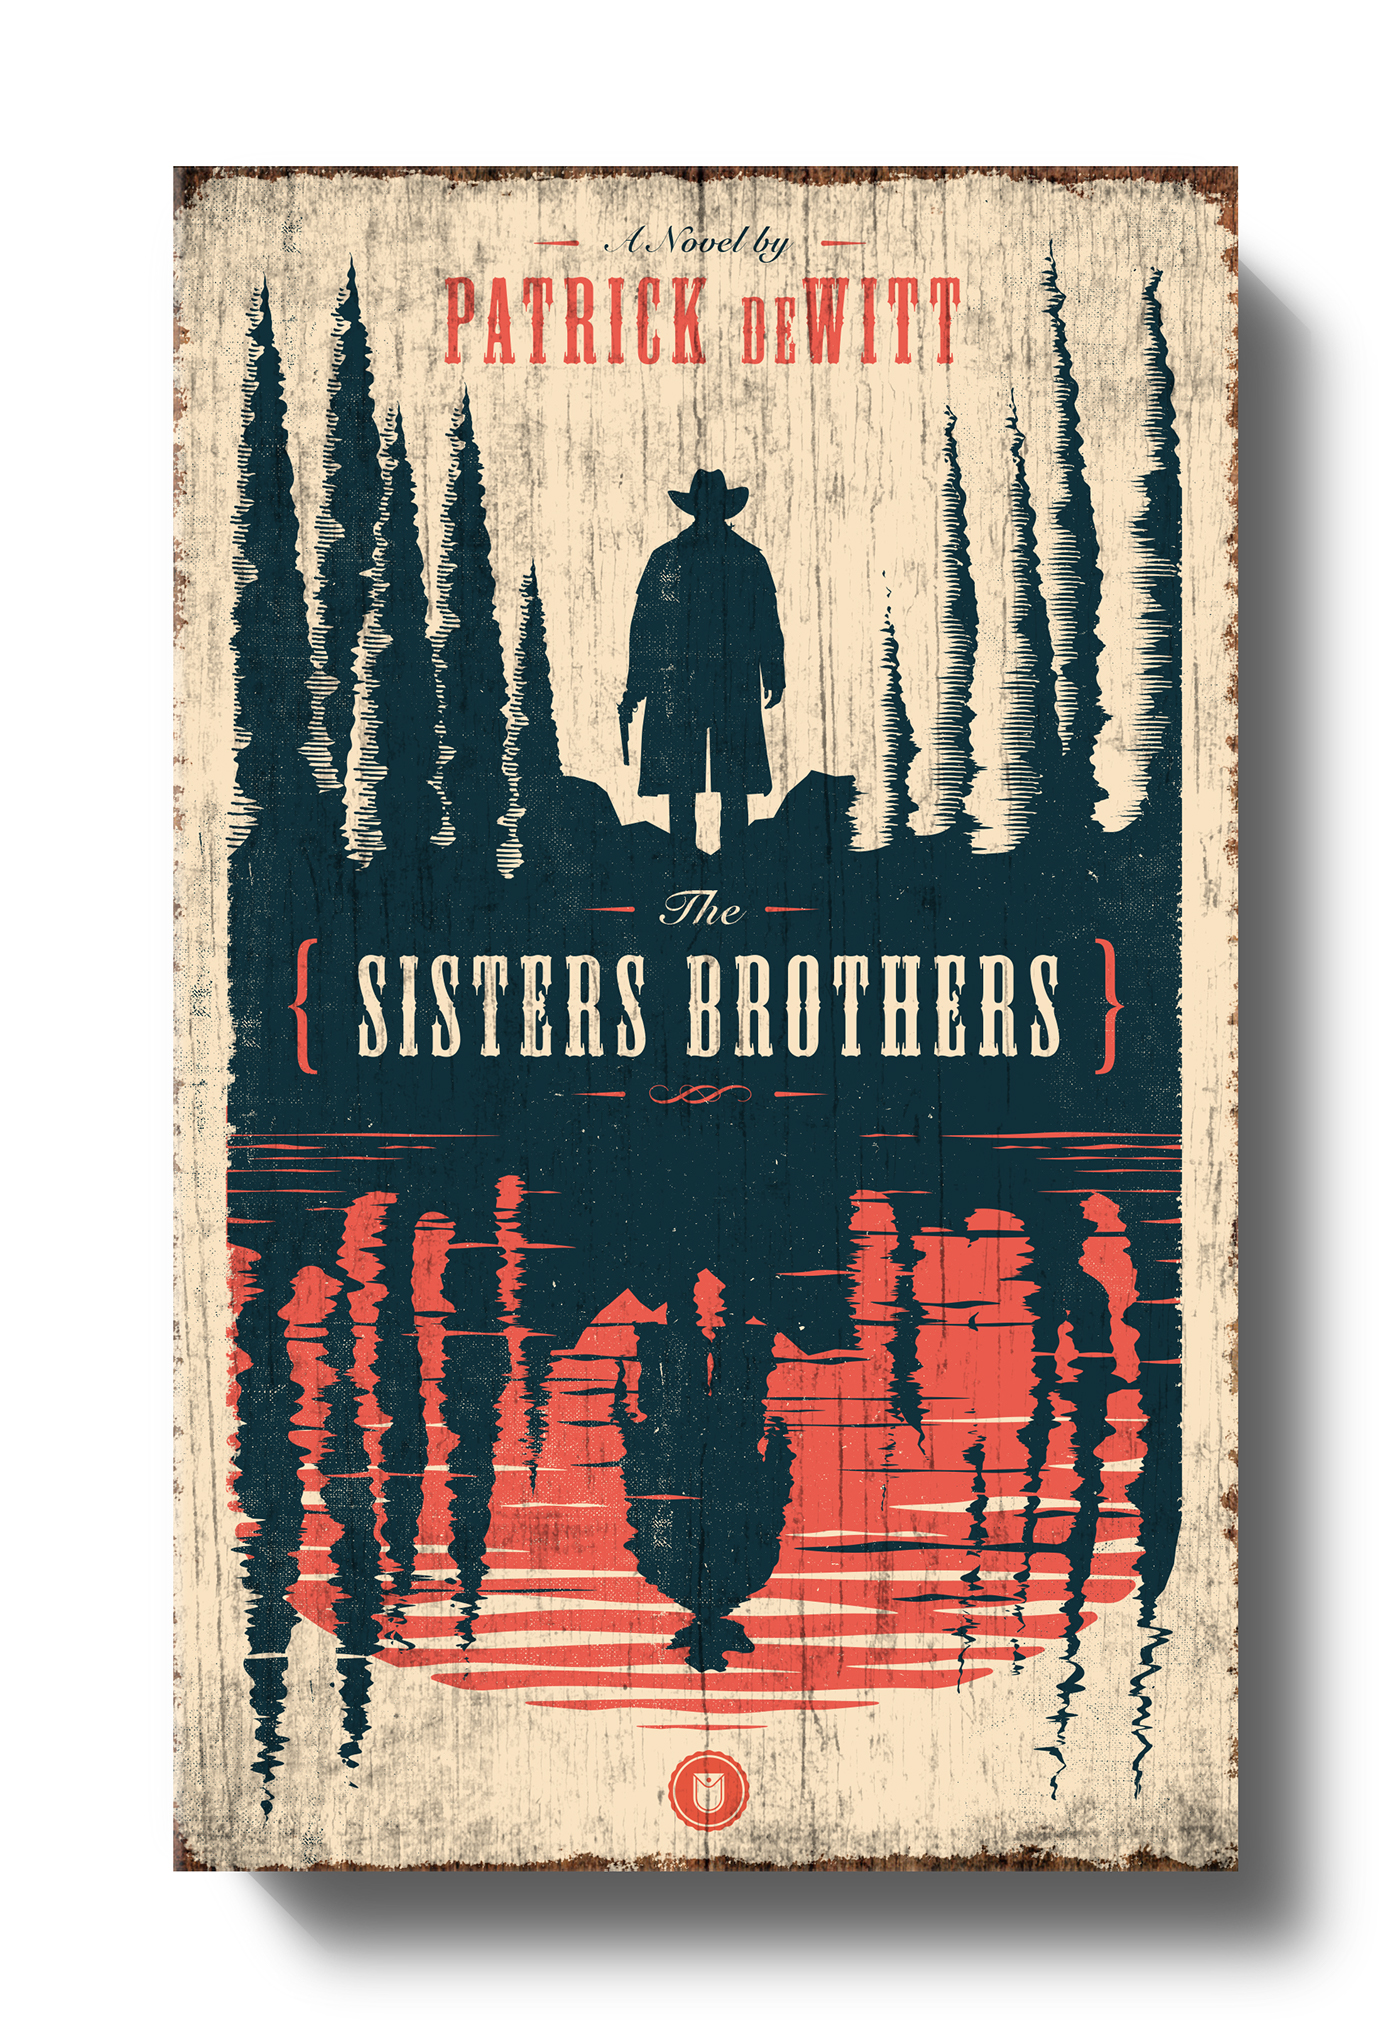 Poster design jobs uk - The Sisters Brothers Book Cover